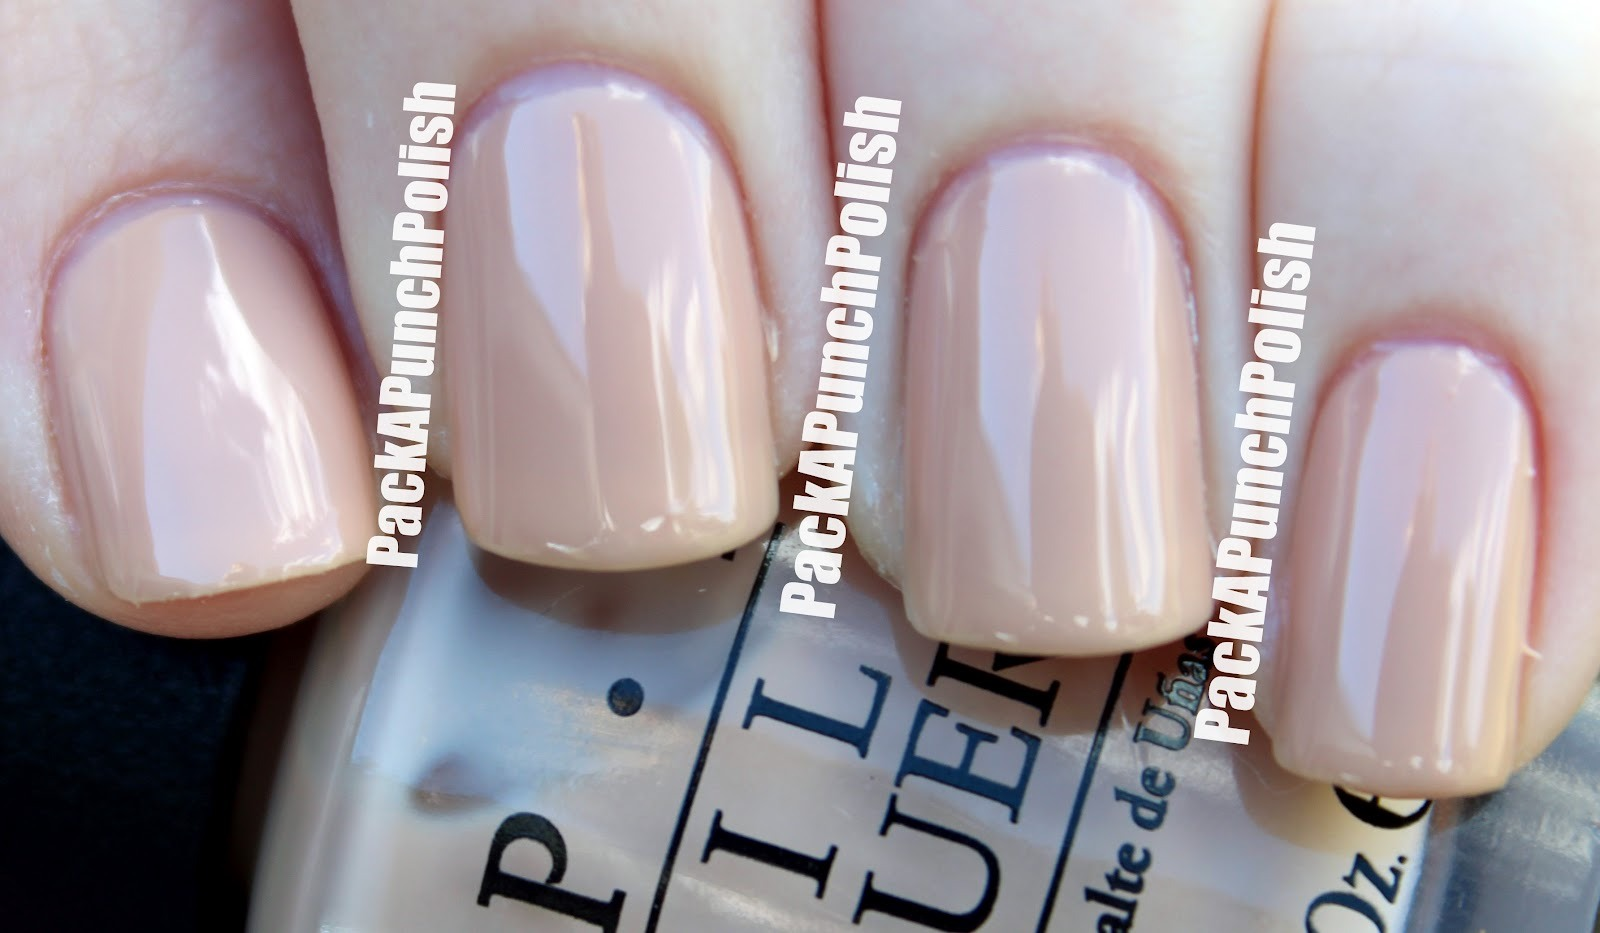 Instead Of Sheer Pink Try Opaque Beige Opi Nail Lacquer In Samoan Sand